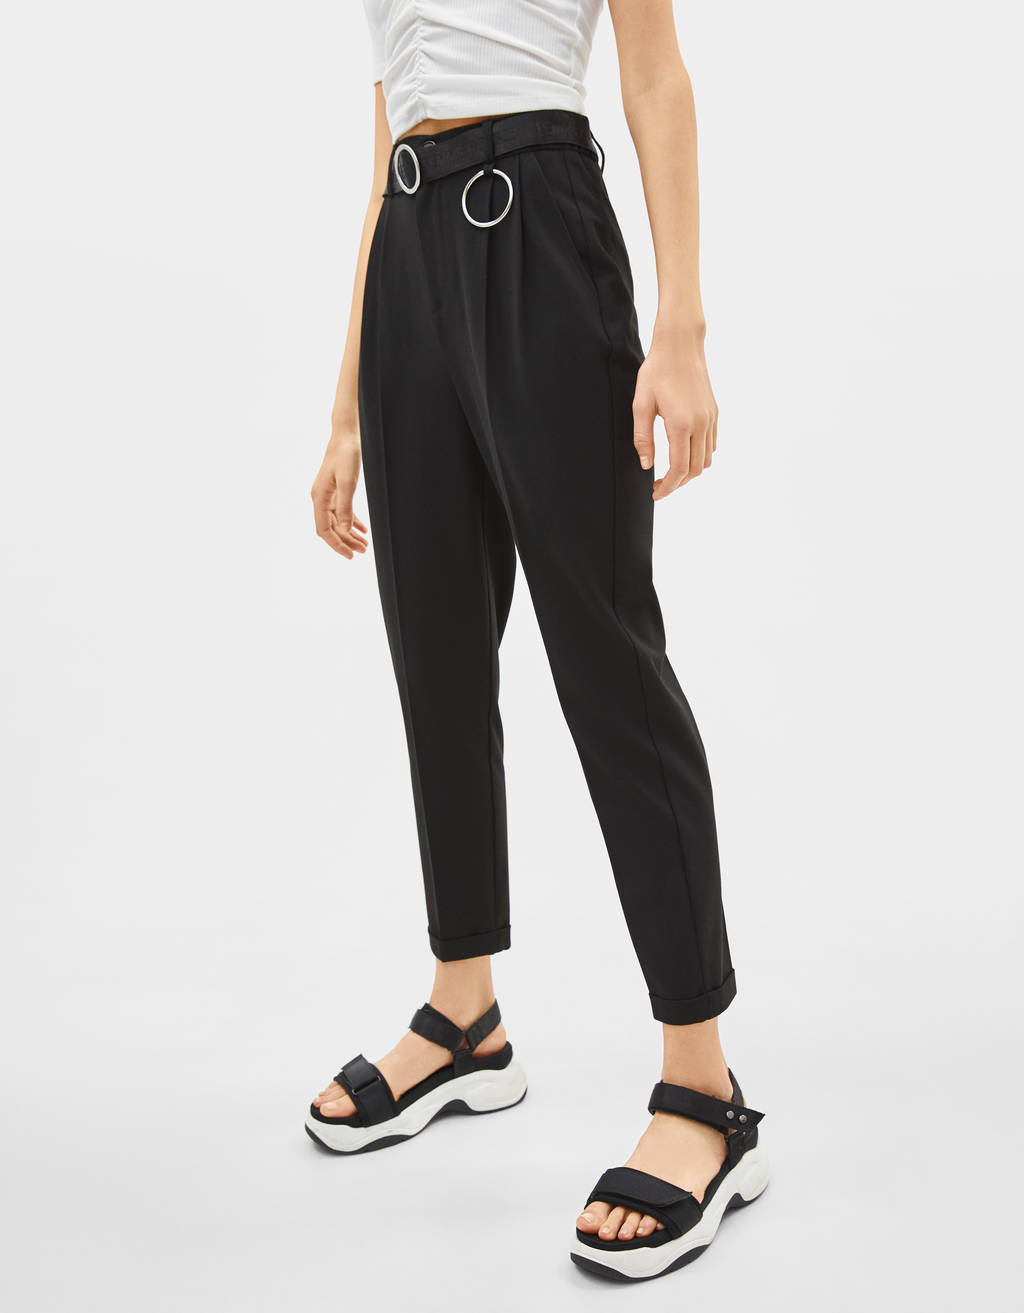 Belted Joggers by Bershka